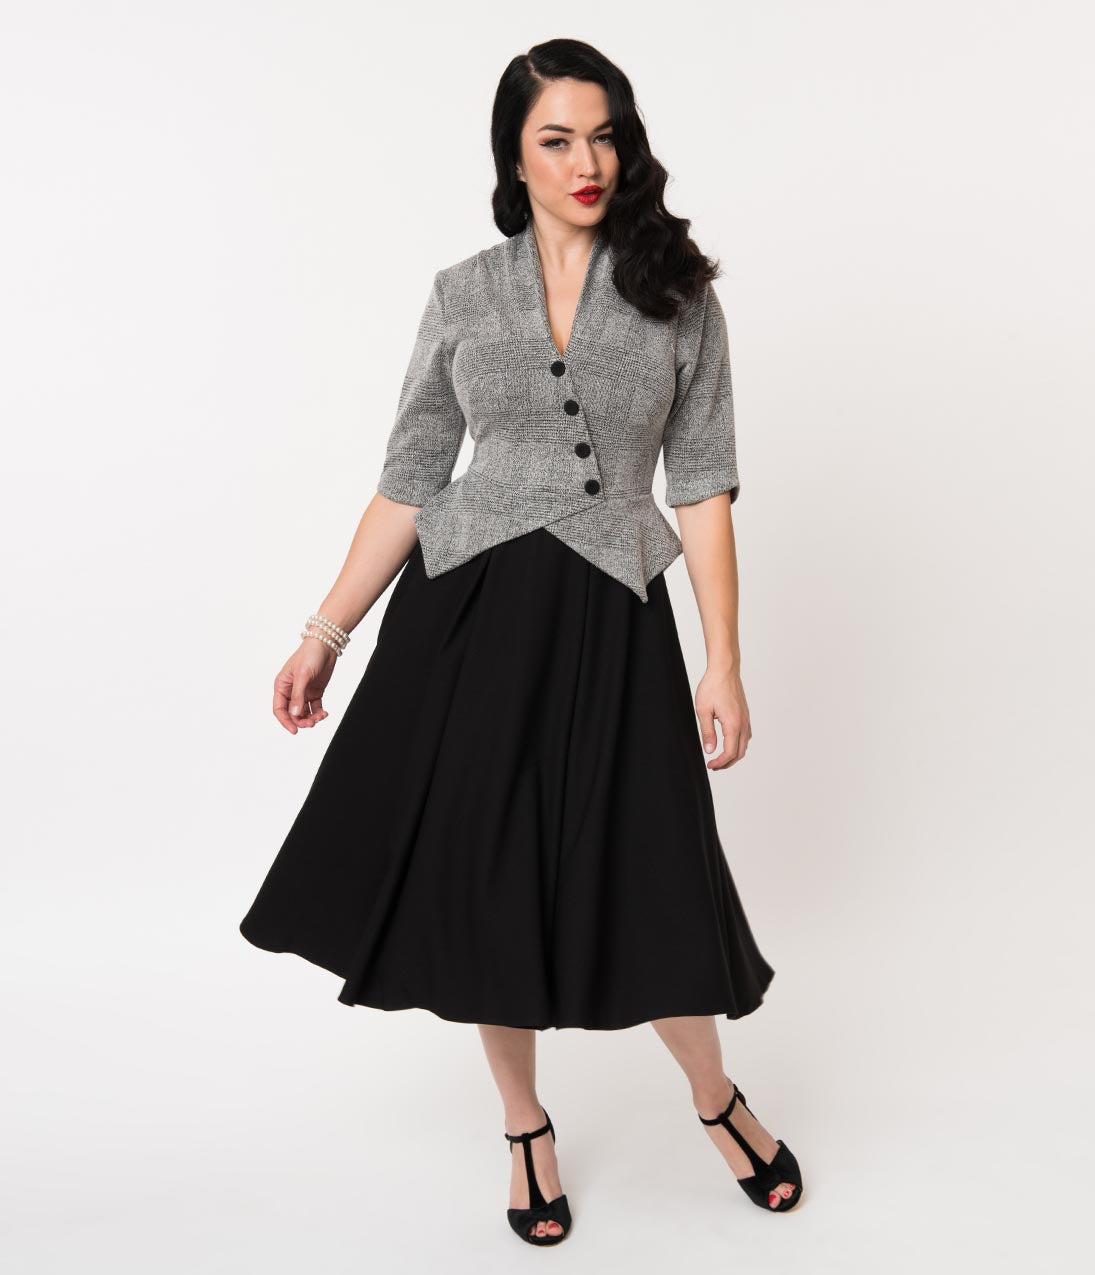 1950s Swing Dresses | 50s Swing Dress Miss Candyfloss 1950S Black  Grey Check Delphine Suit Swing Dress $138.00 AT vintagedancer.com